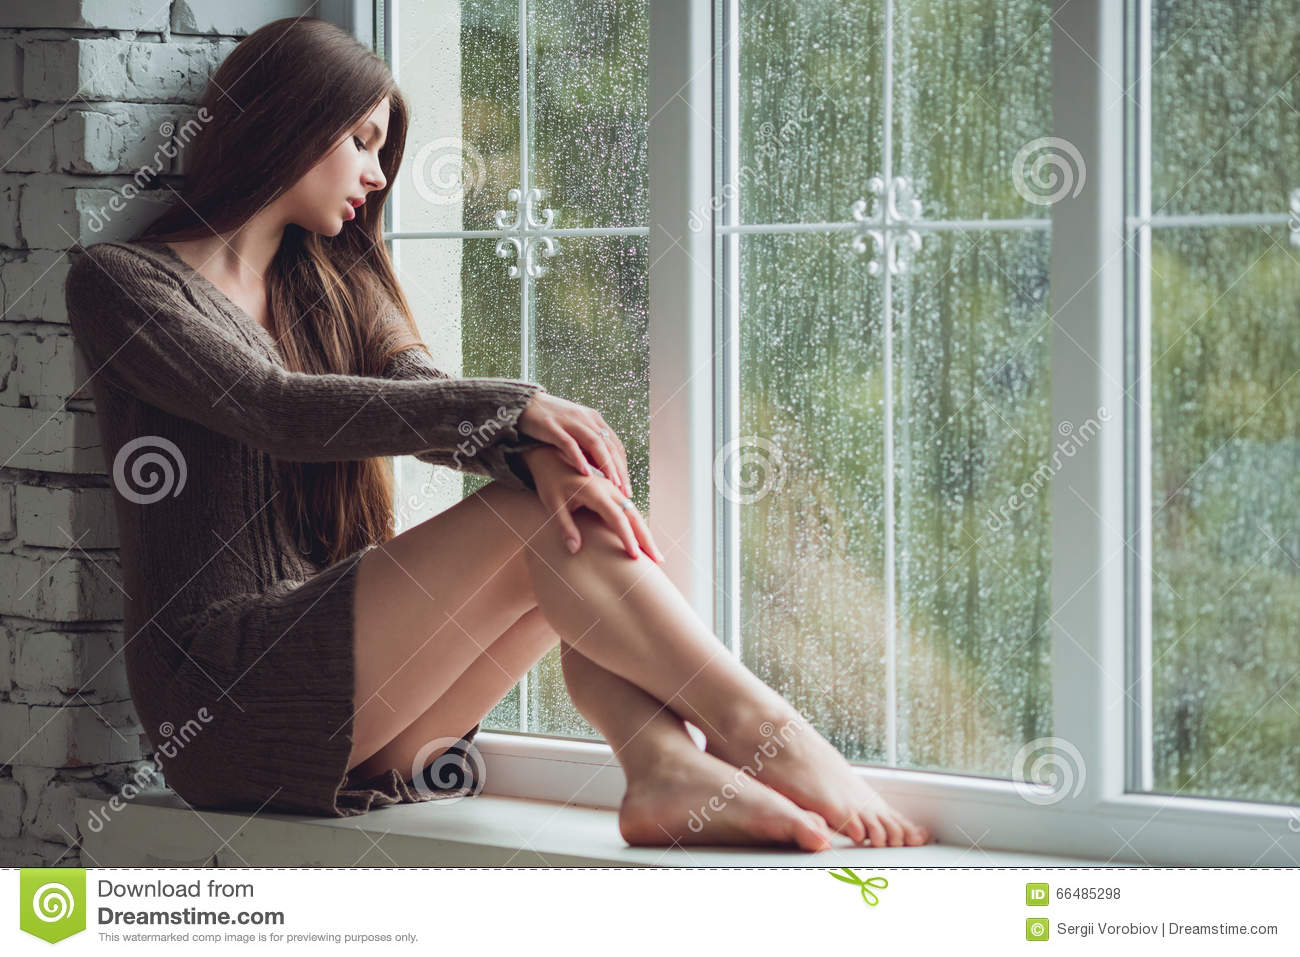 Beautiful young woman sitting alone near window with rain drops. and sad girl. Concept of loneliness